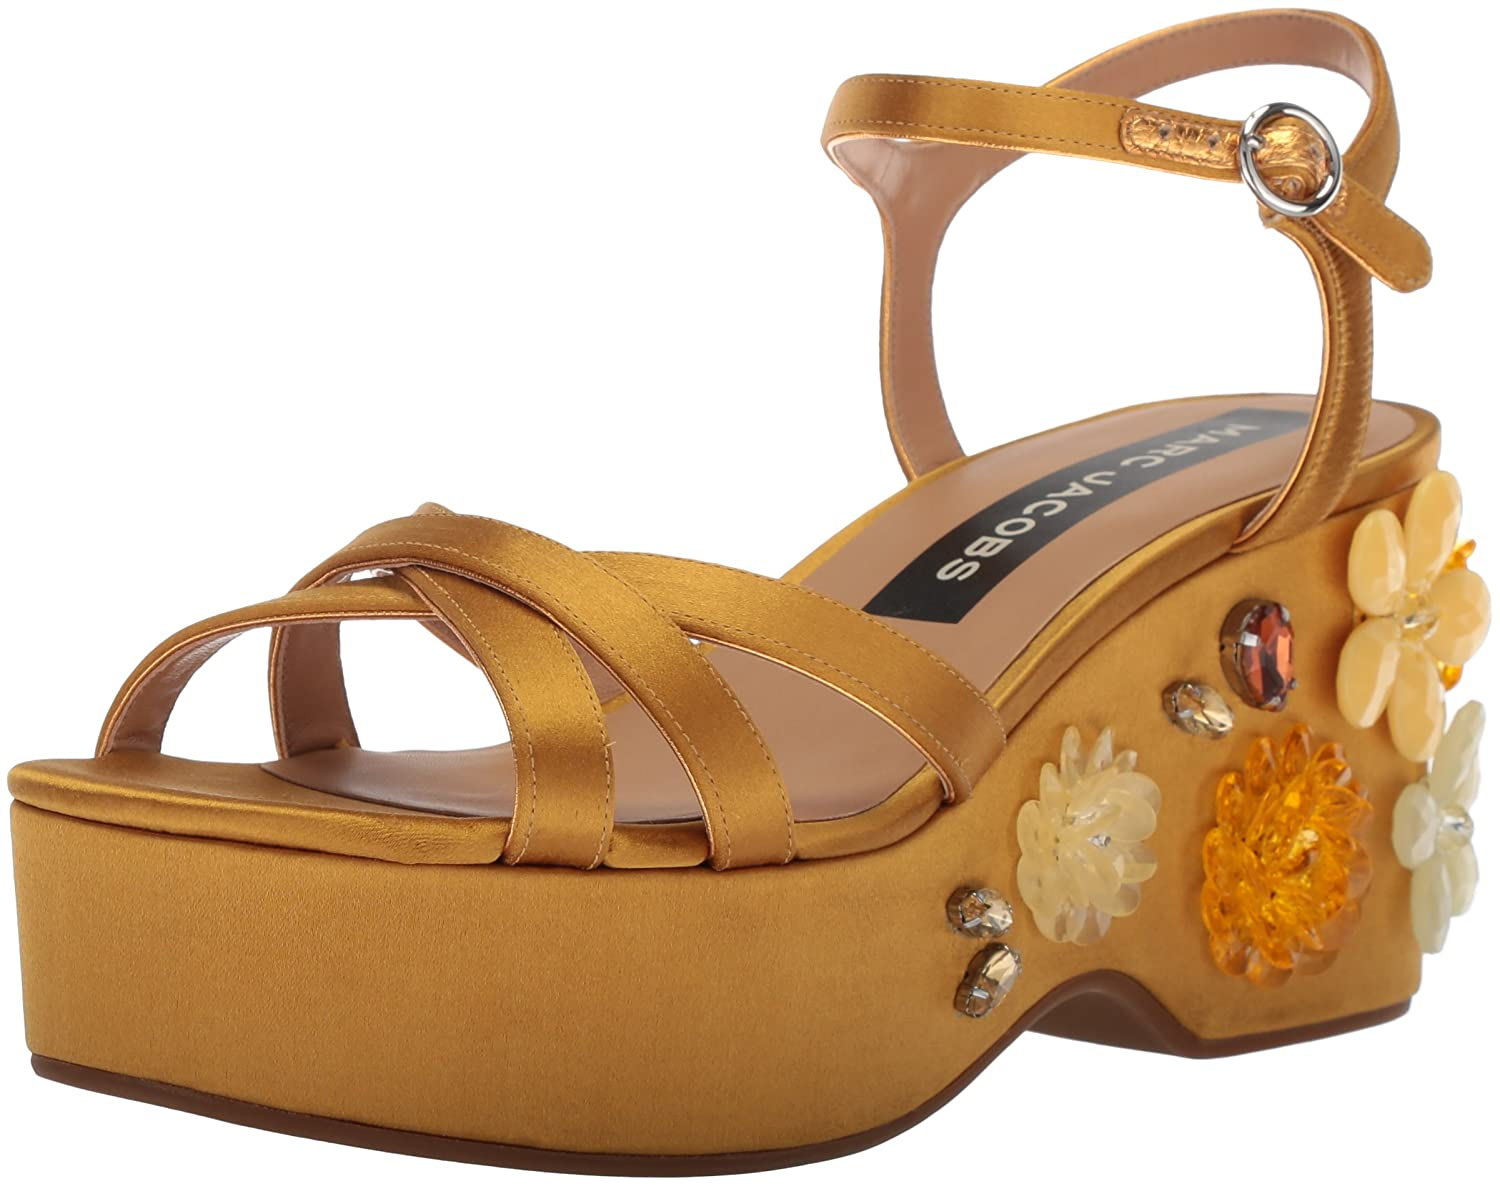 Marc Jacobs Women's Callie Embellished Wedge Sandal B075Y6M2JR 37.5 M EU (7.5 US)|Gold